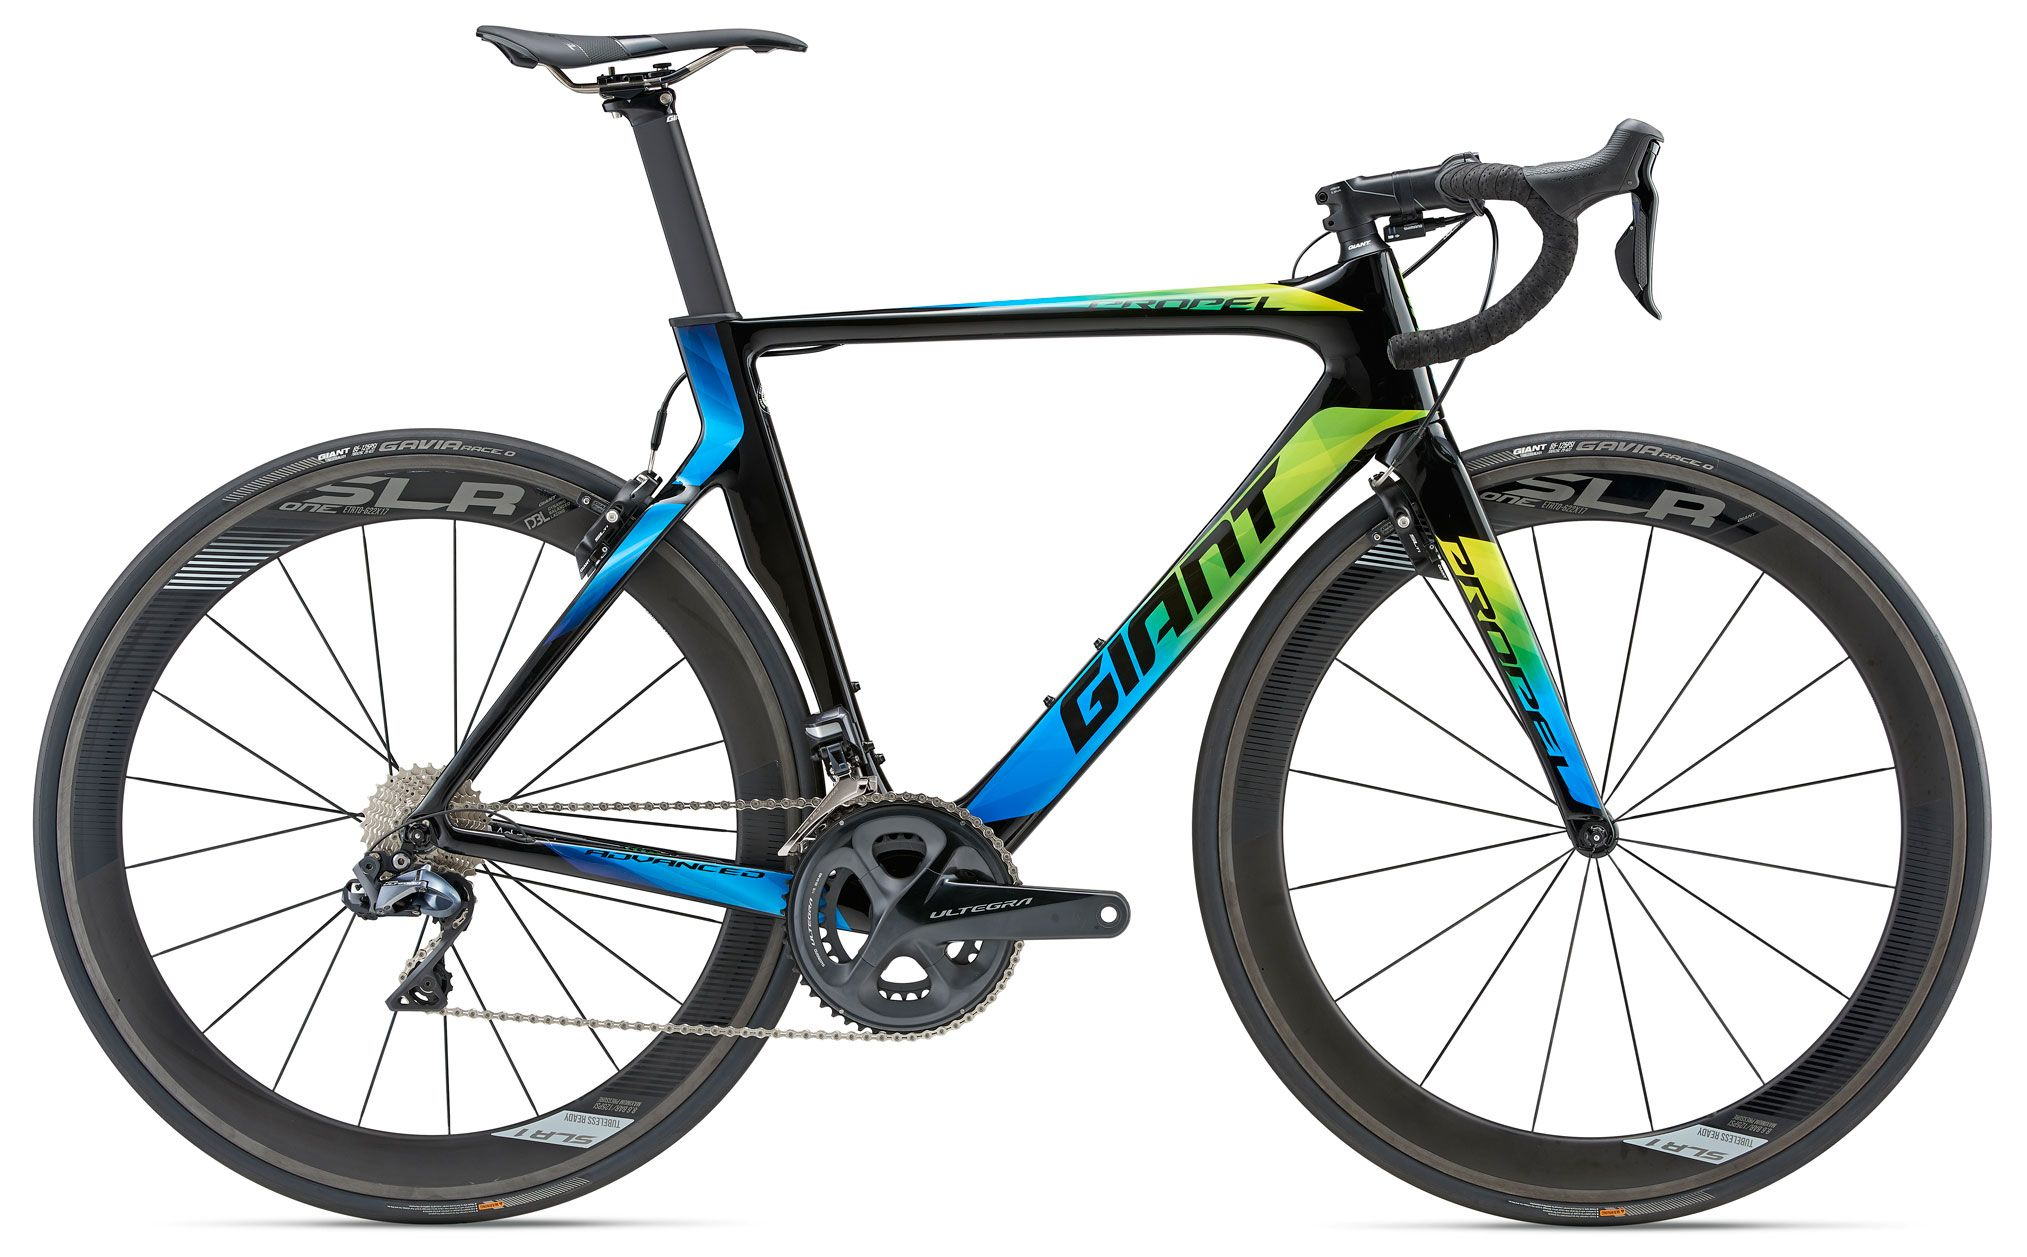 Велосипед Giant Propel Advanced Pro 0 2018 велосипед giant trinity advanced pro 0 2016